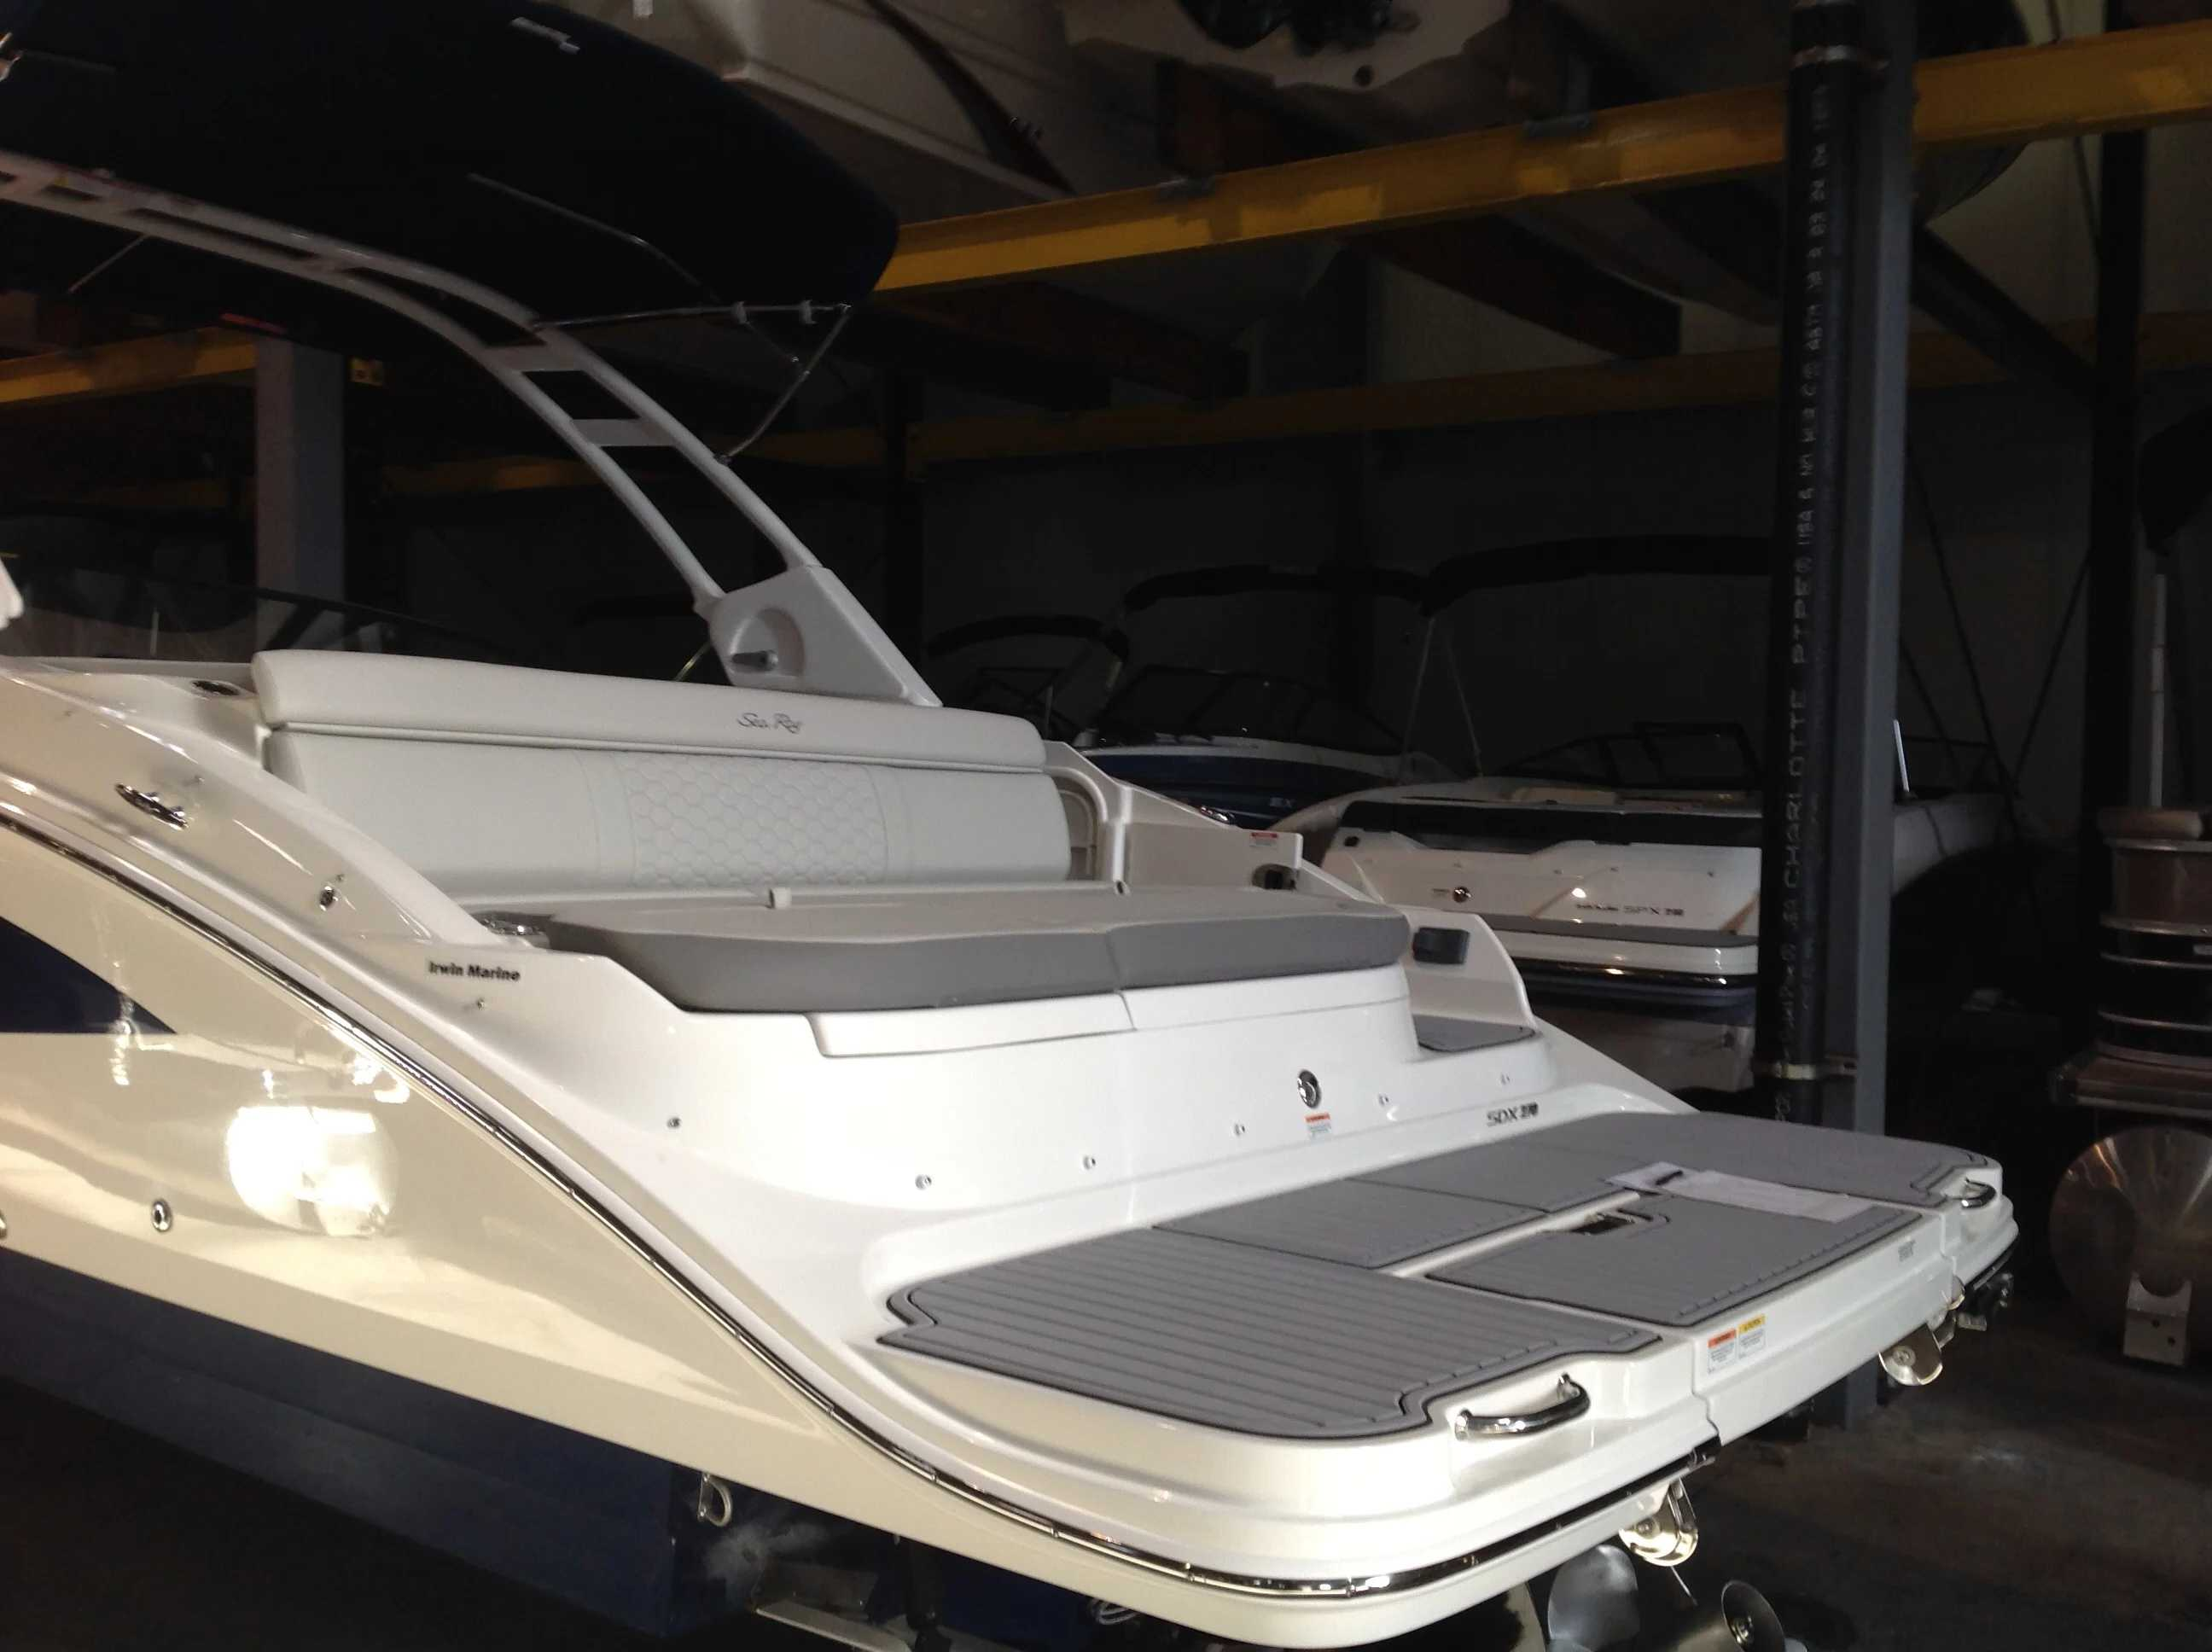 2021 Sea Ray boat for sale, model of the boat is 270 SDX & Image # 19 of 21